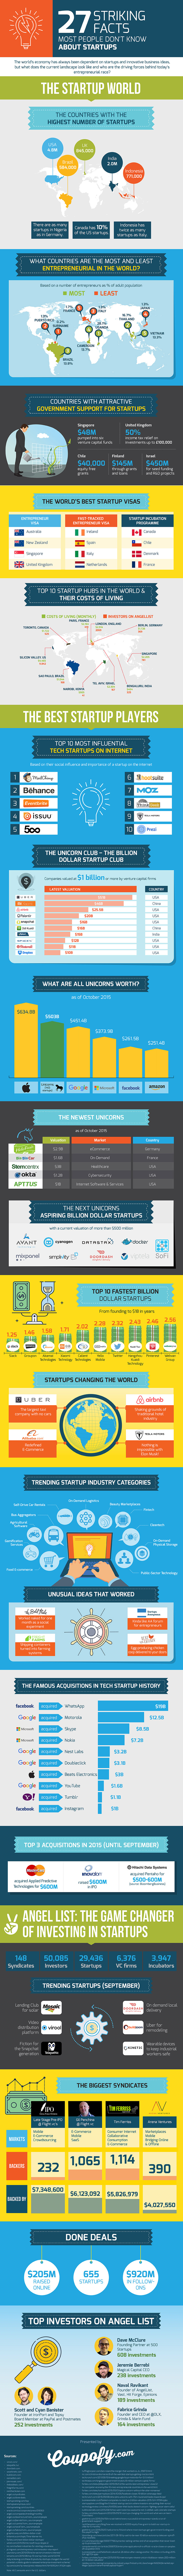 Facts About Startup World